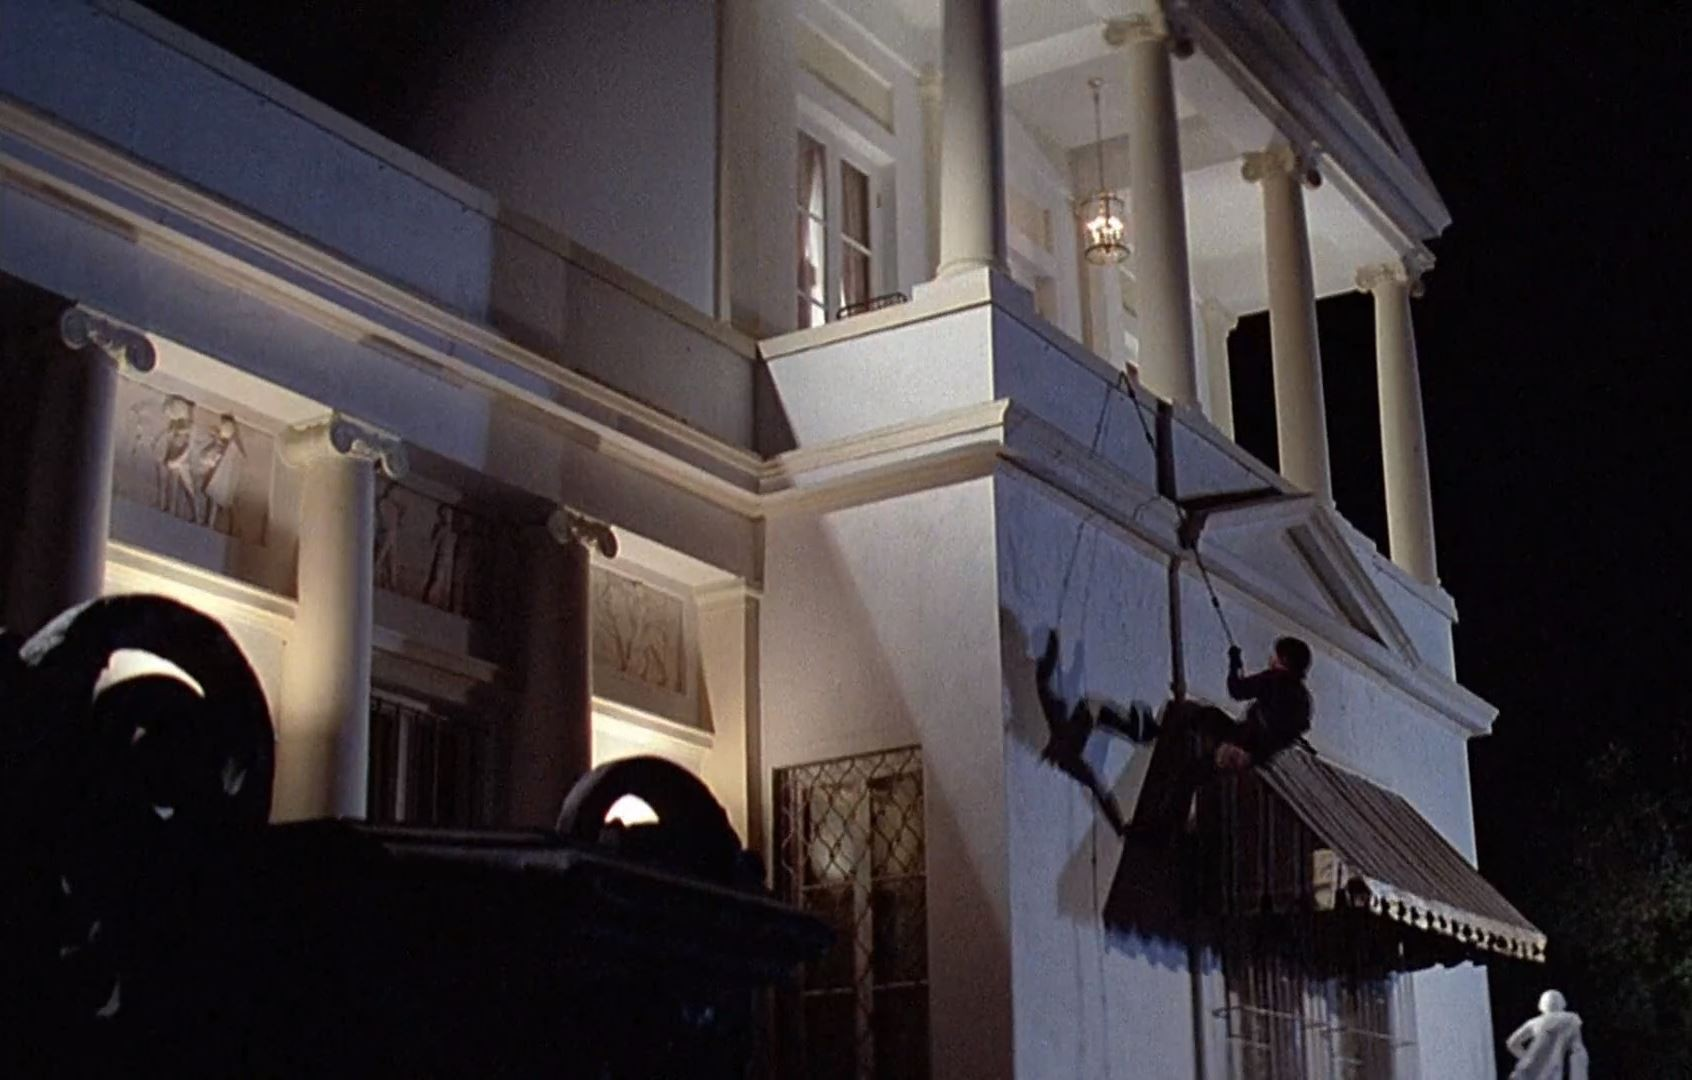 Scaling the building in Scarface